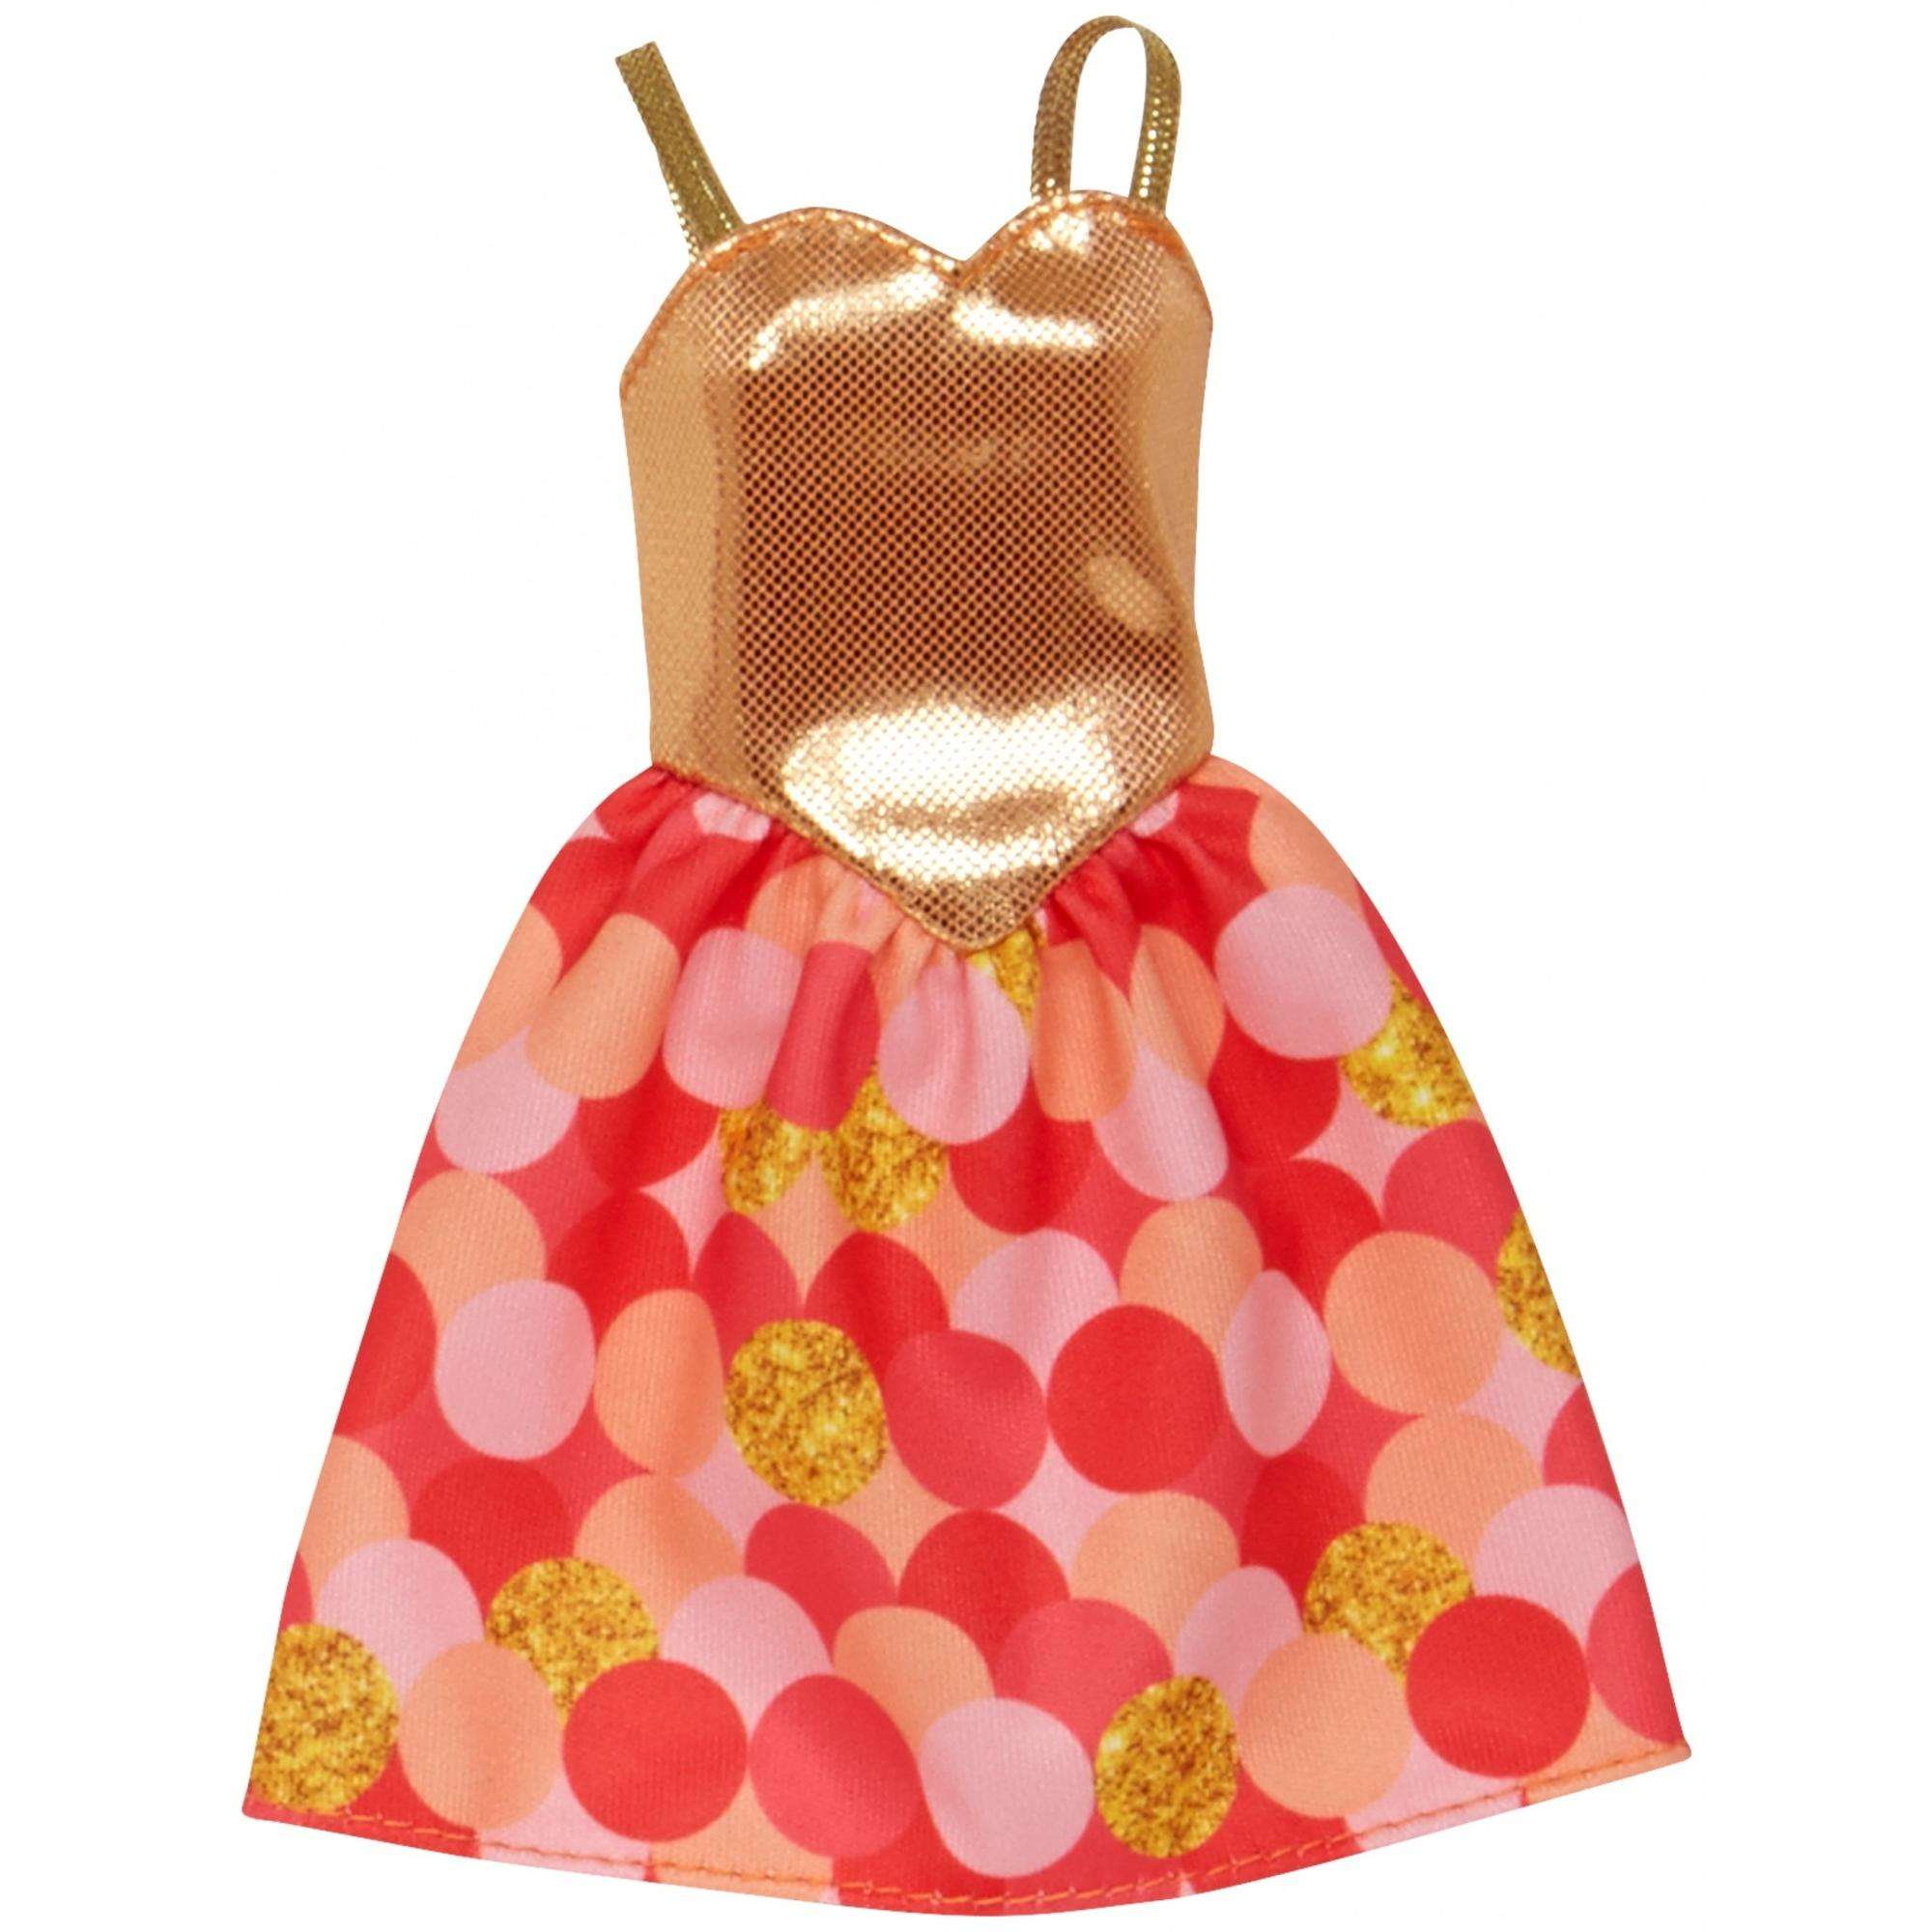 Barbie Dress Fashion 13